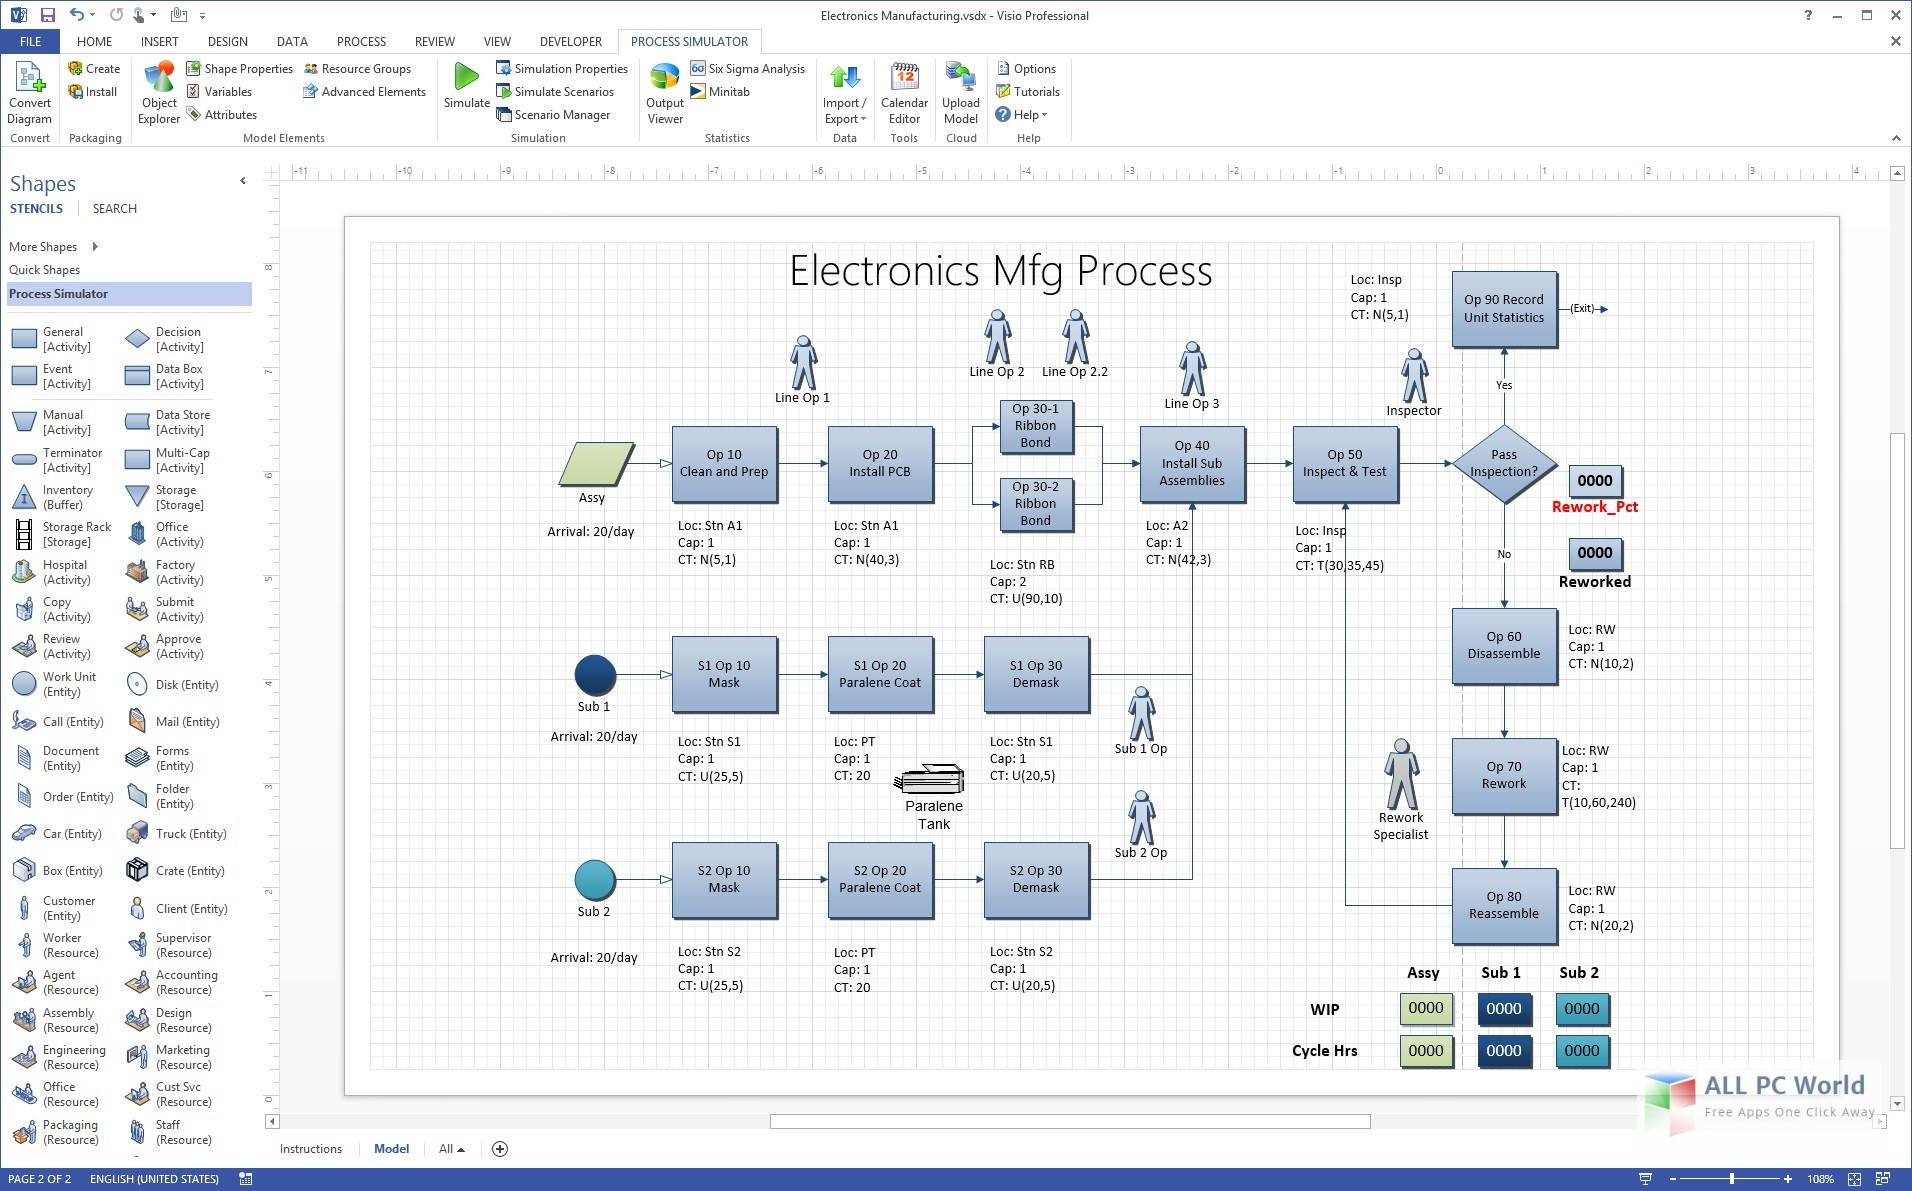 Microsoft Office 2016 Pro Plus incl Visio & Project Review